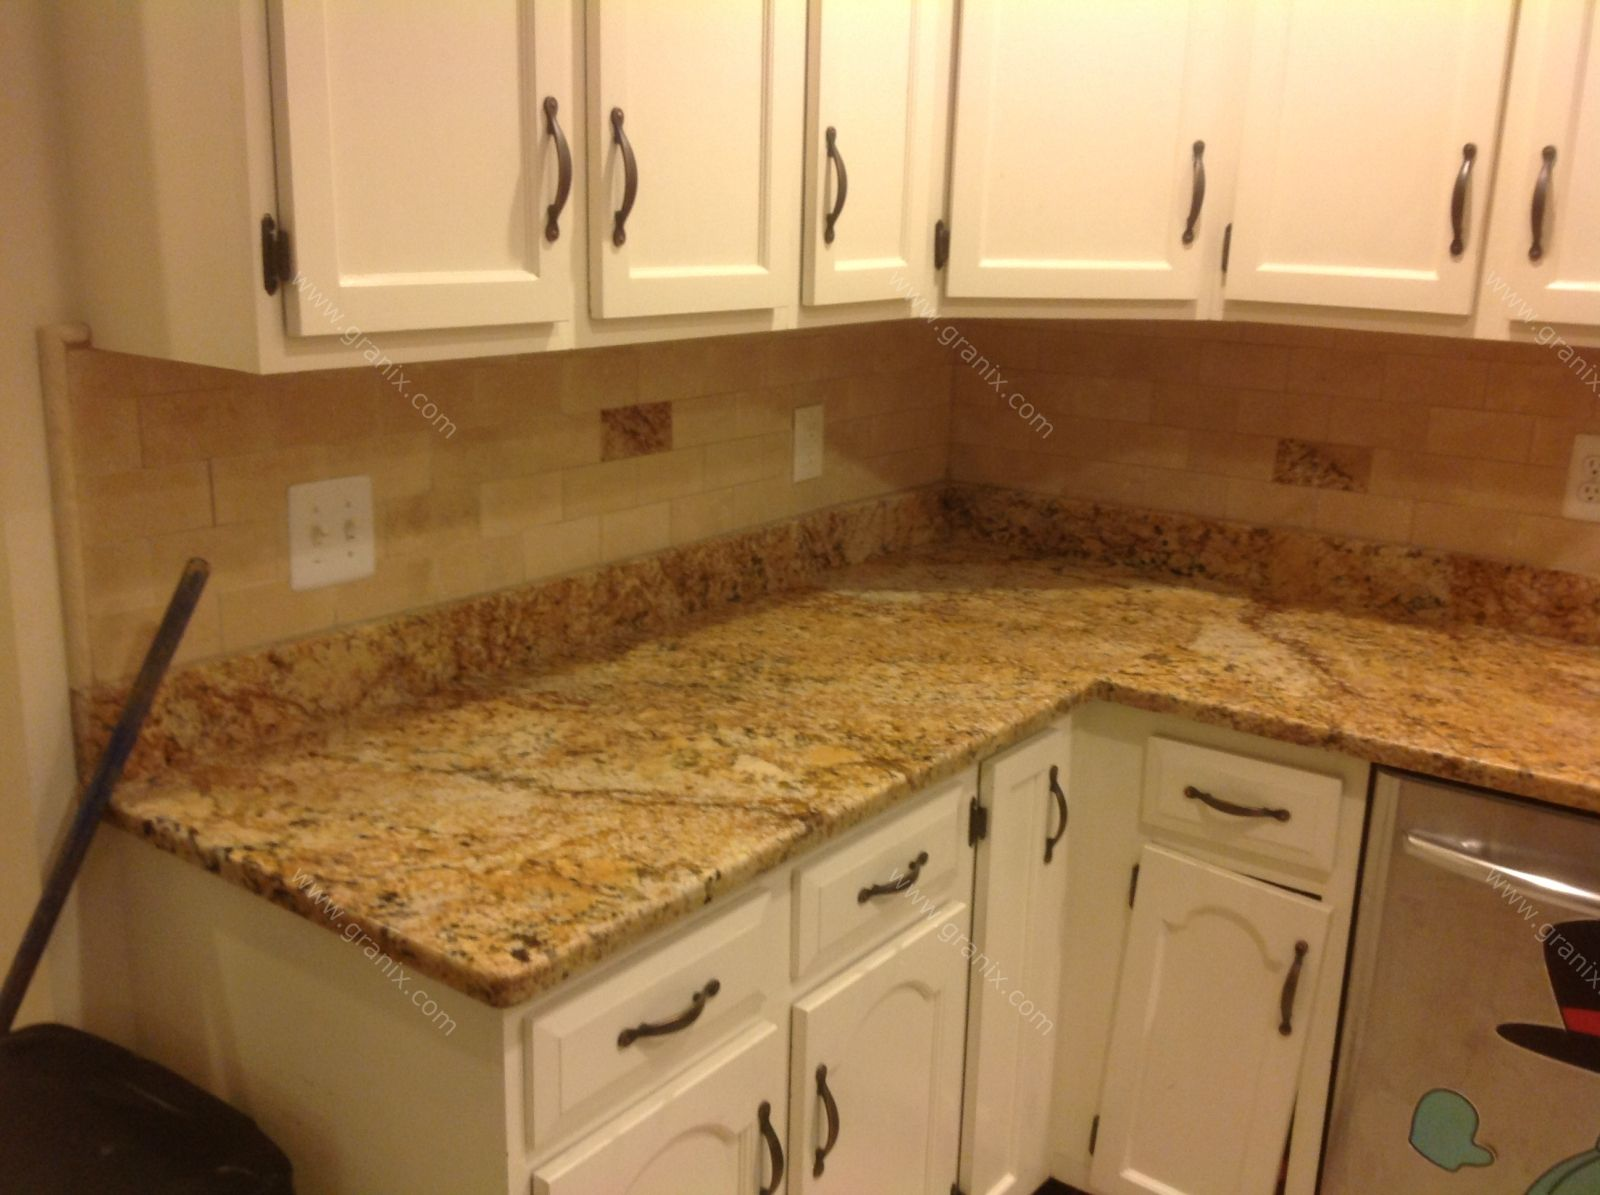 Granite Countertops With Backsplash Inspiration Backsplash Ideas For Granite Countertops  Leave A Reply Cancel . Design Inspiration